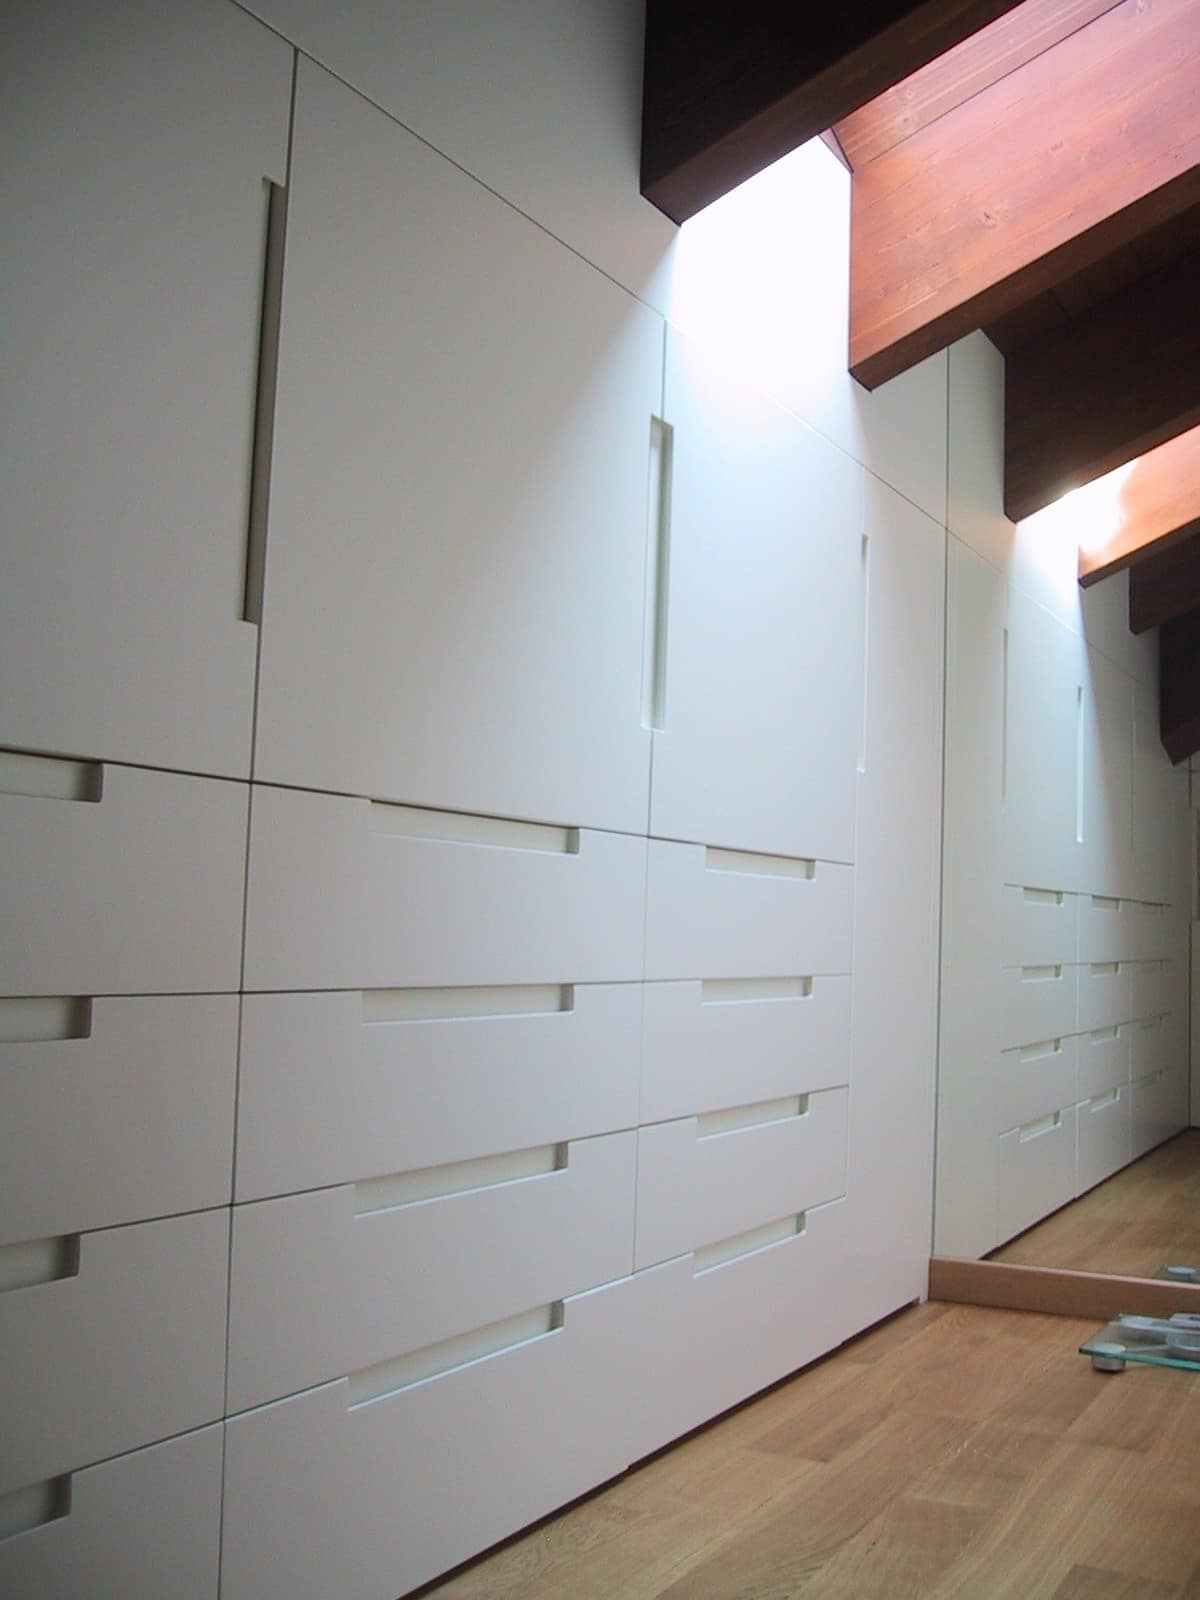 Closet for under-roof rooms 04, Wardrobe in white lacquered wood, tailormade for attic